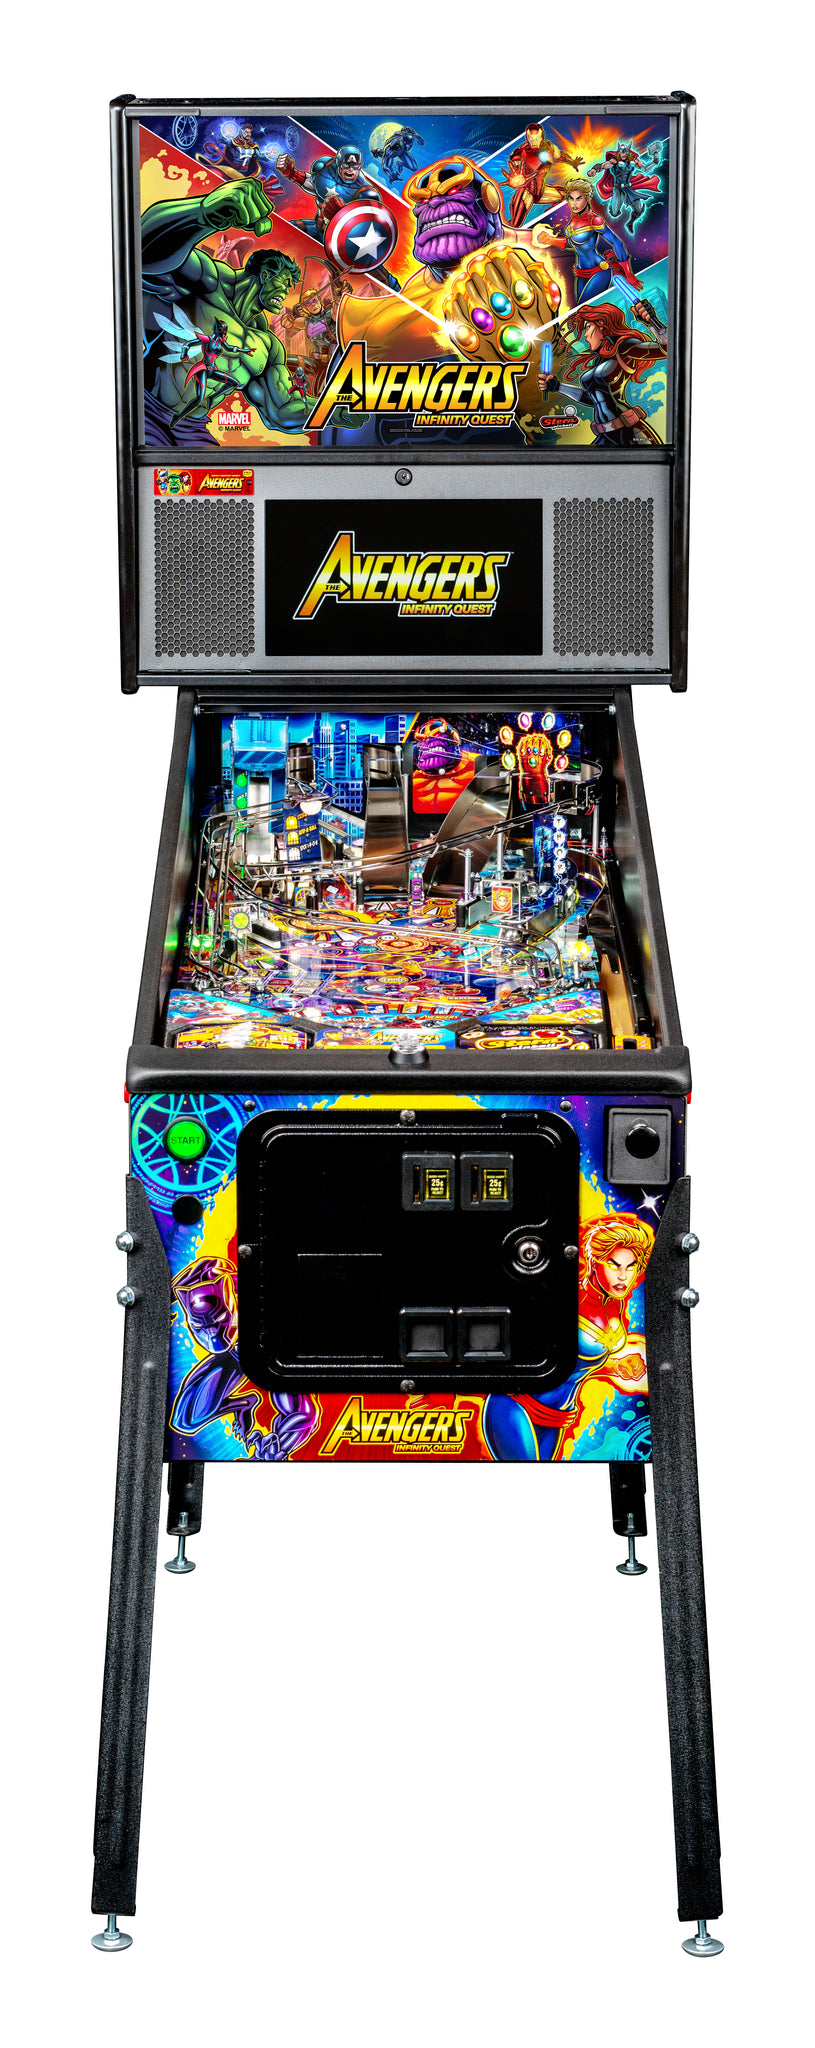 Avengers Infinity Quest Pro Pinball Machine by Stern